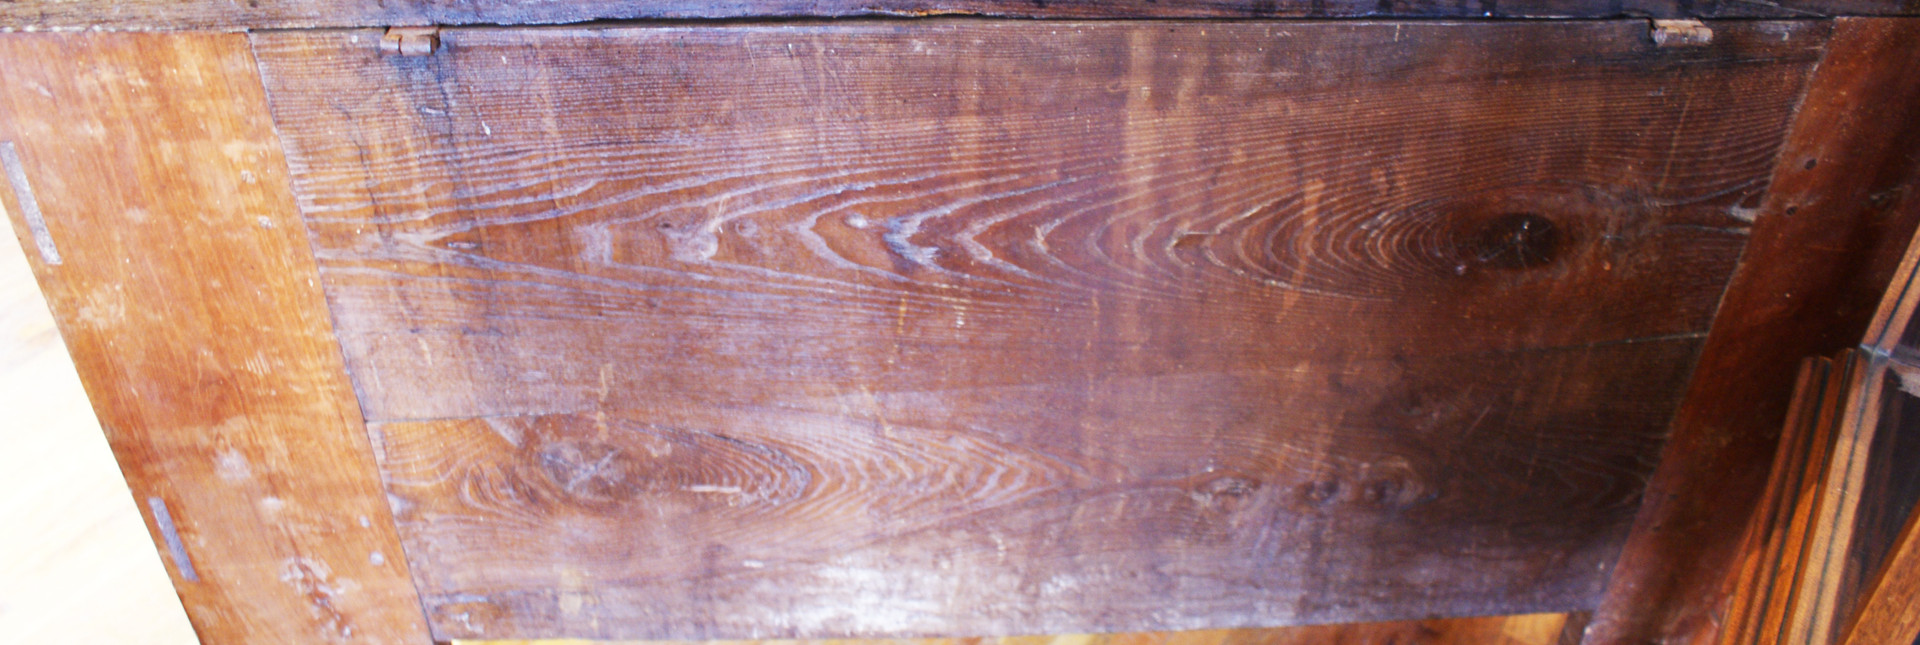 Large Carved Oak Plank Coffer From The Basque Country, Spain Circa Late 18th Century